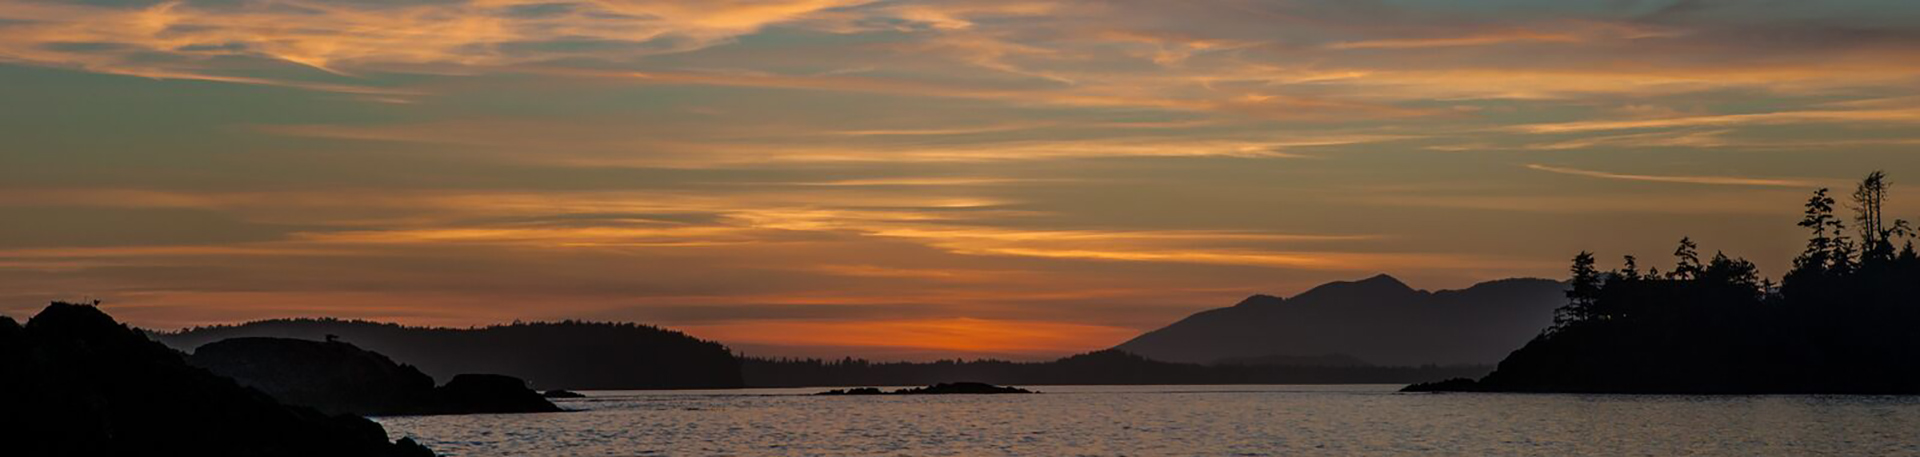 Orange and peach sunset over islands in an inlet